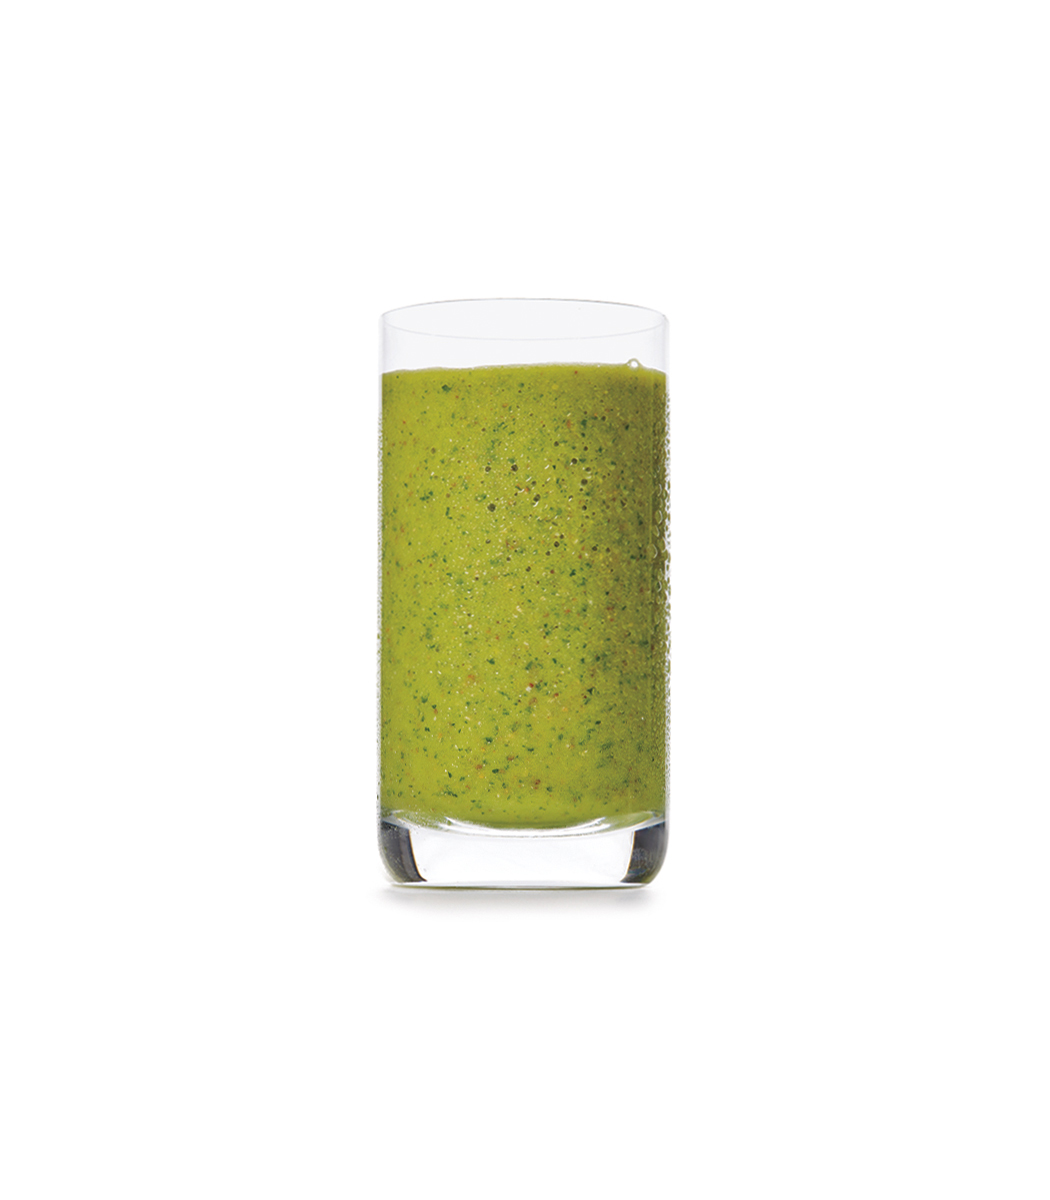 Parsley, Pineapple, and Banana Smoothie